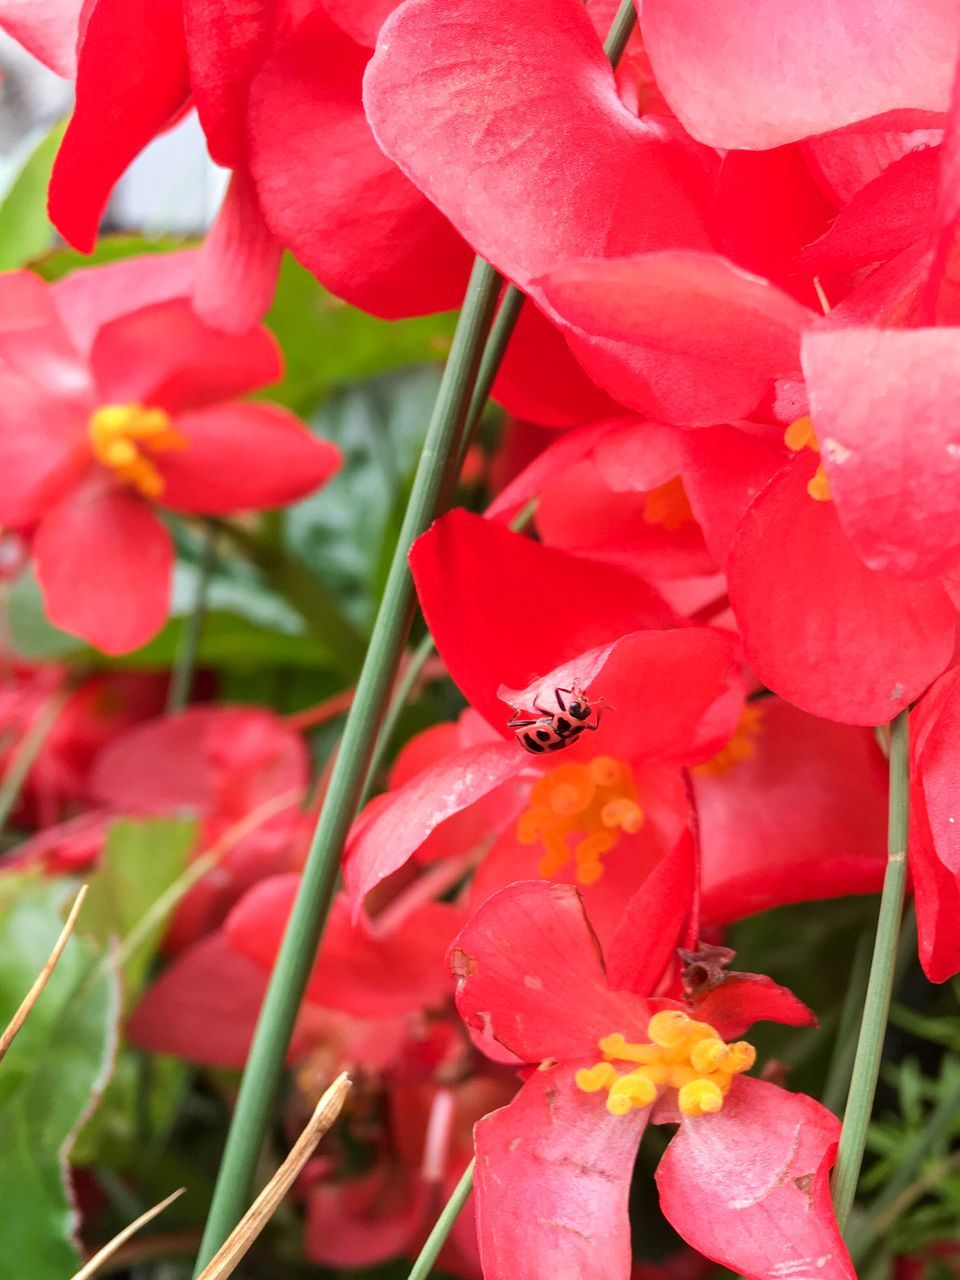 flower, one animal, petal, animals in the wild, insect, animal themes, growth, beauty in nature, nature, animal wildlife, red, fragility, plant, flower head, outdoors, day, no people, blooming, freshness, close-up, bee, pollination, buzzing